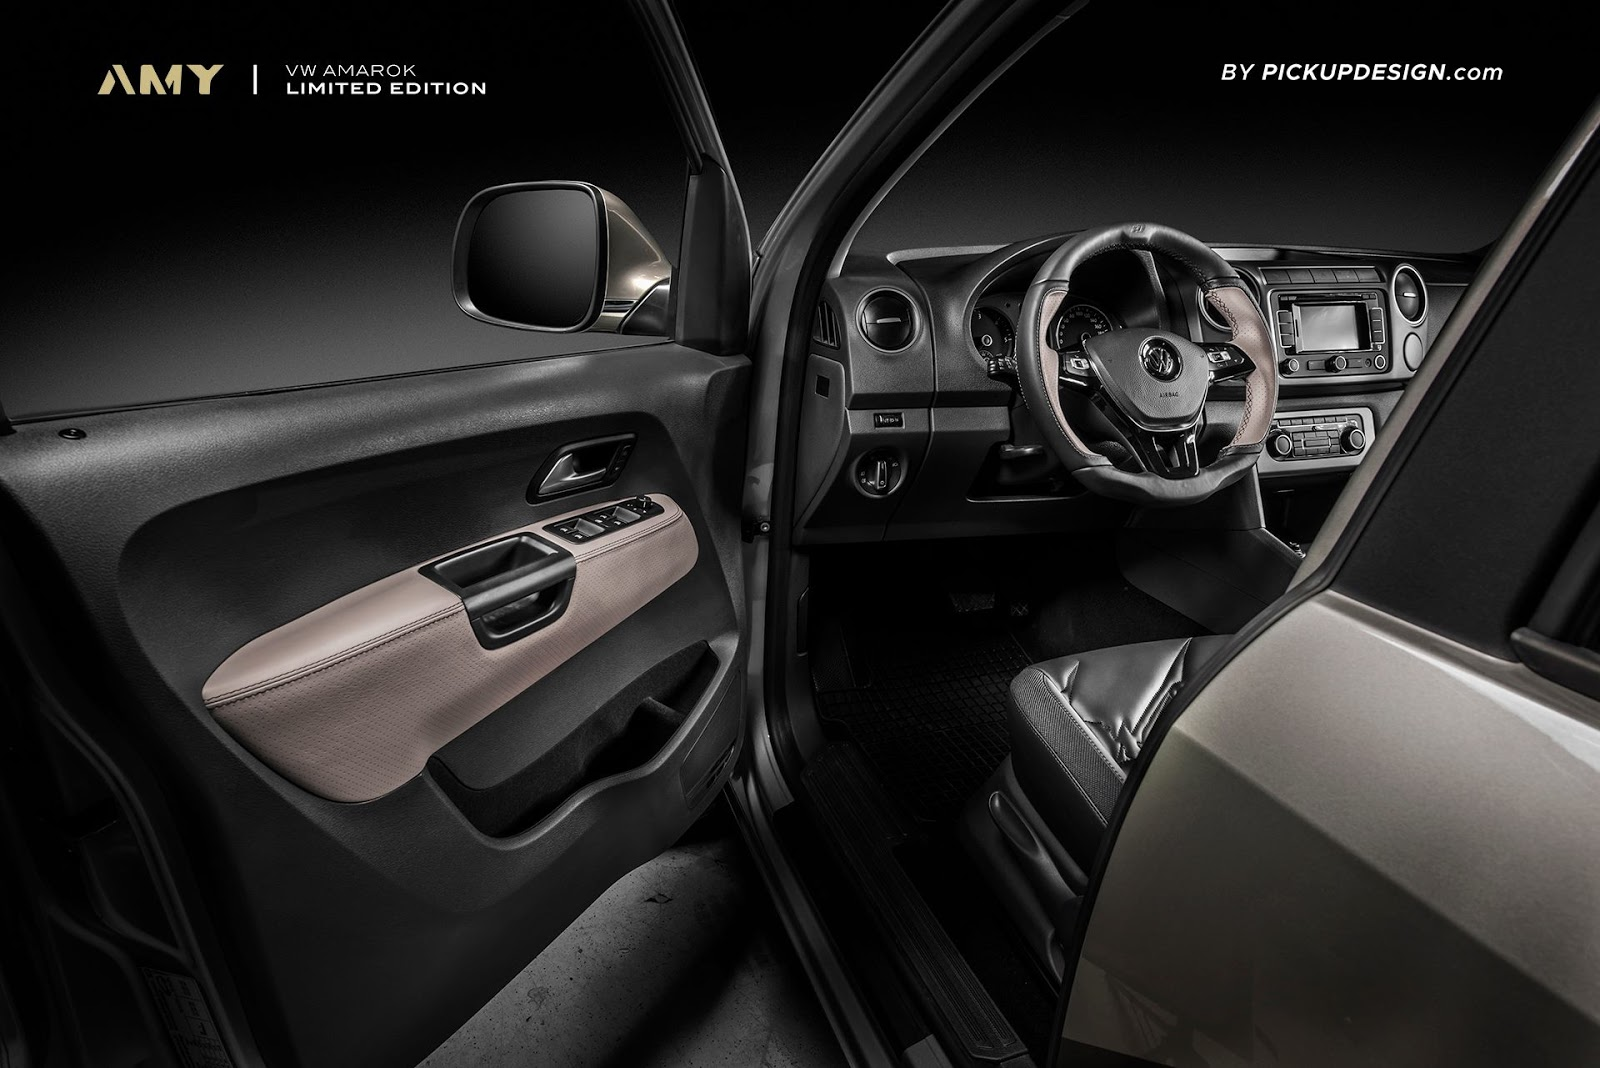 VW-Amarok-Pickup-Design-6